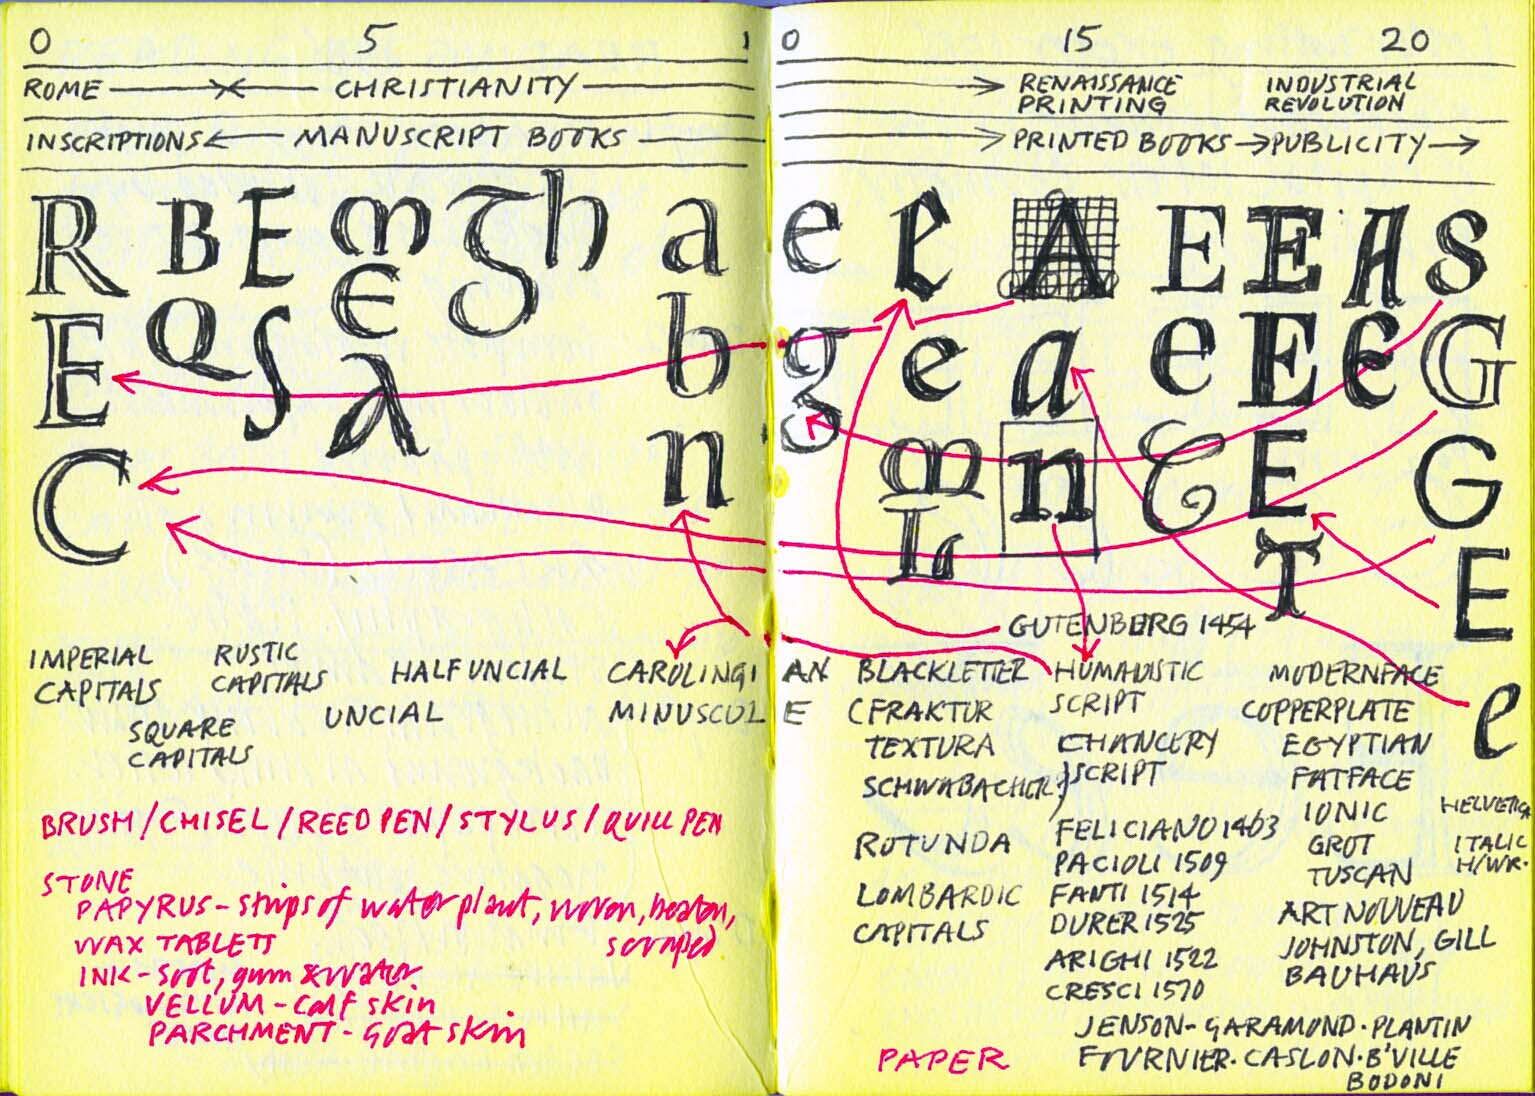 History of Western letters integrating calligraphy, epigraphy and printing. Undated spread from notebook by Michael Harvey.